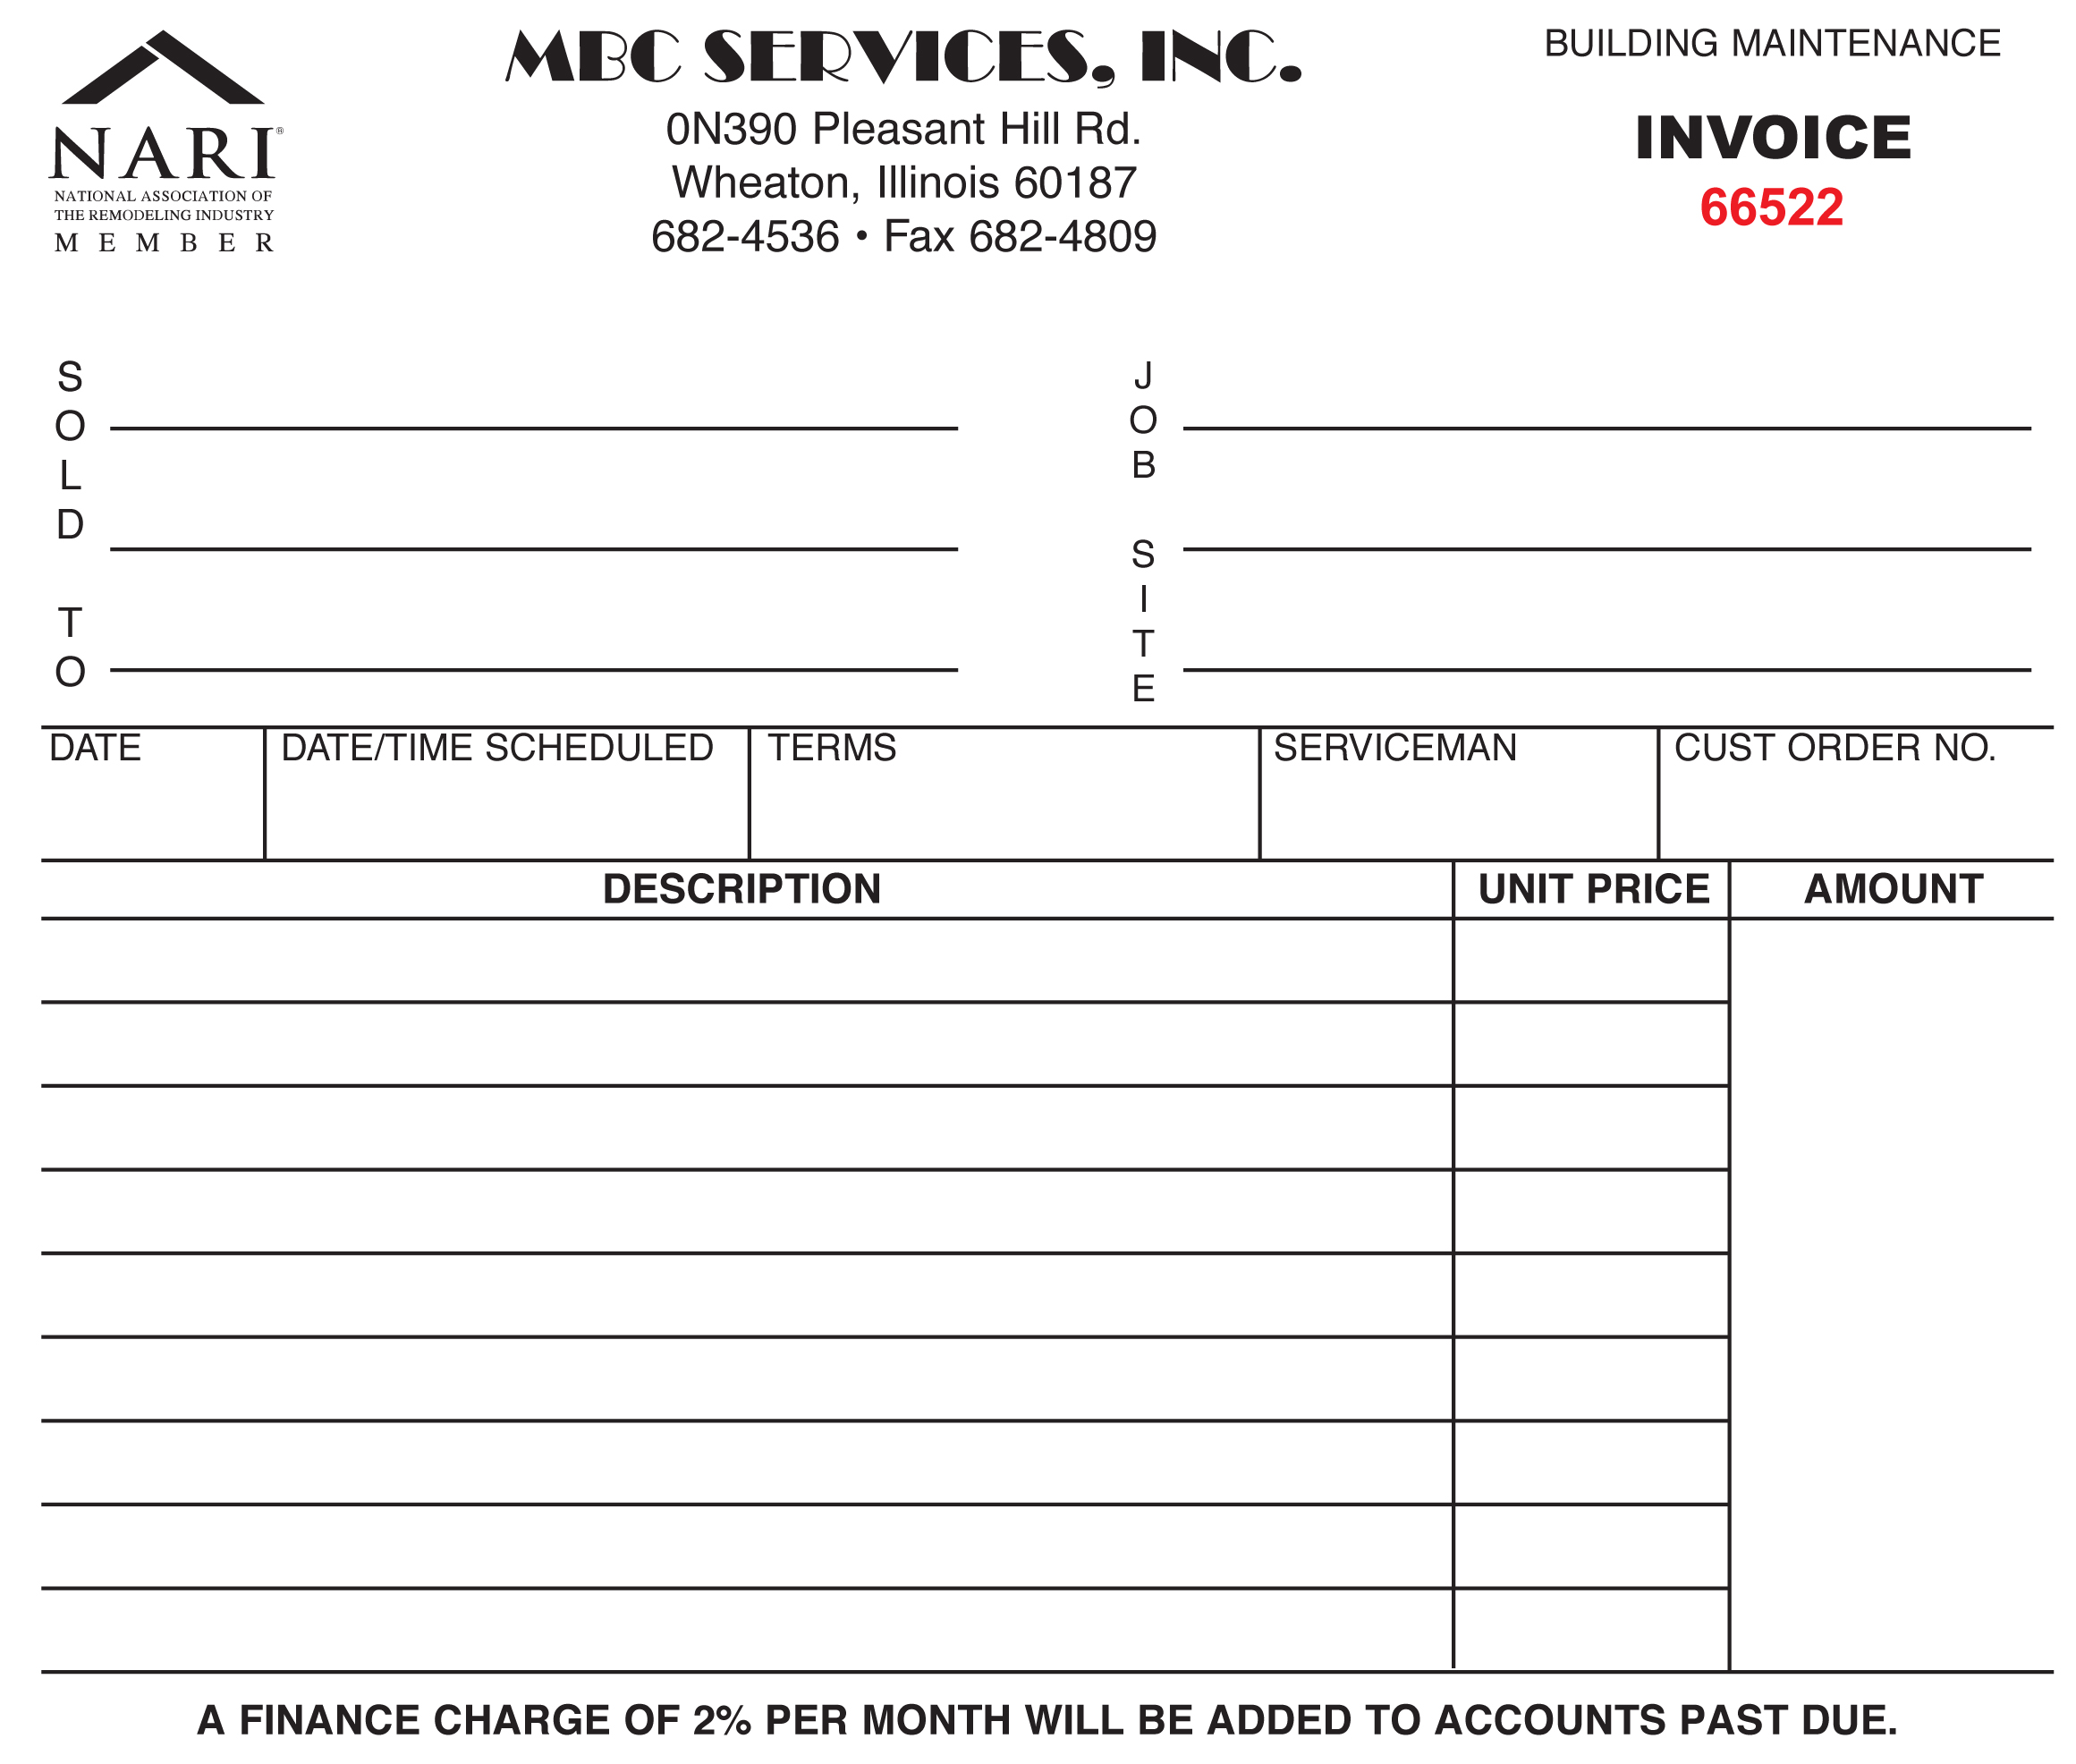 Invoice Form Printing dream ink Powerful Print, Promotional